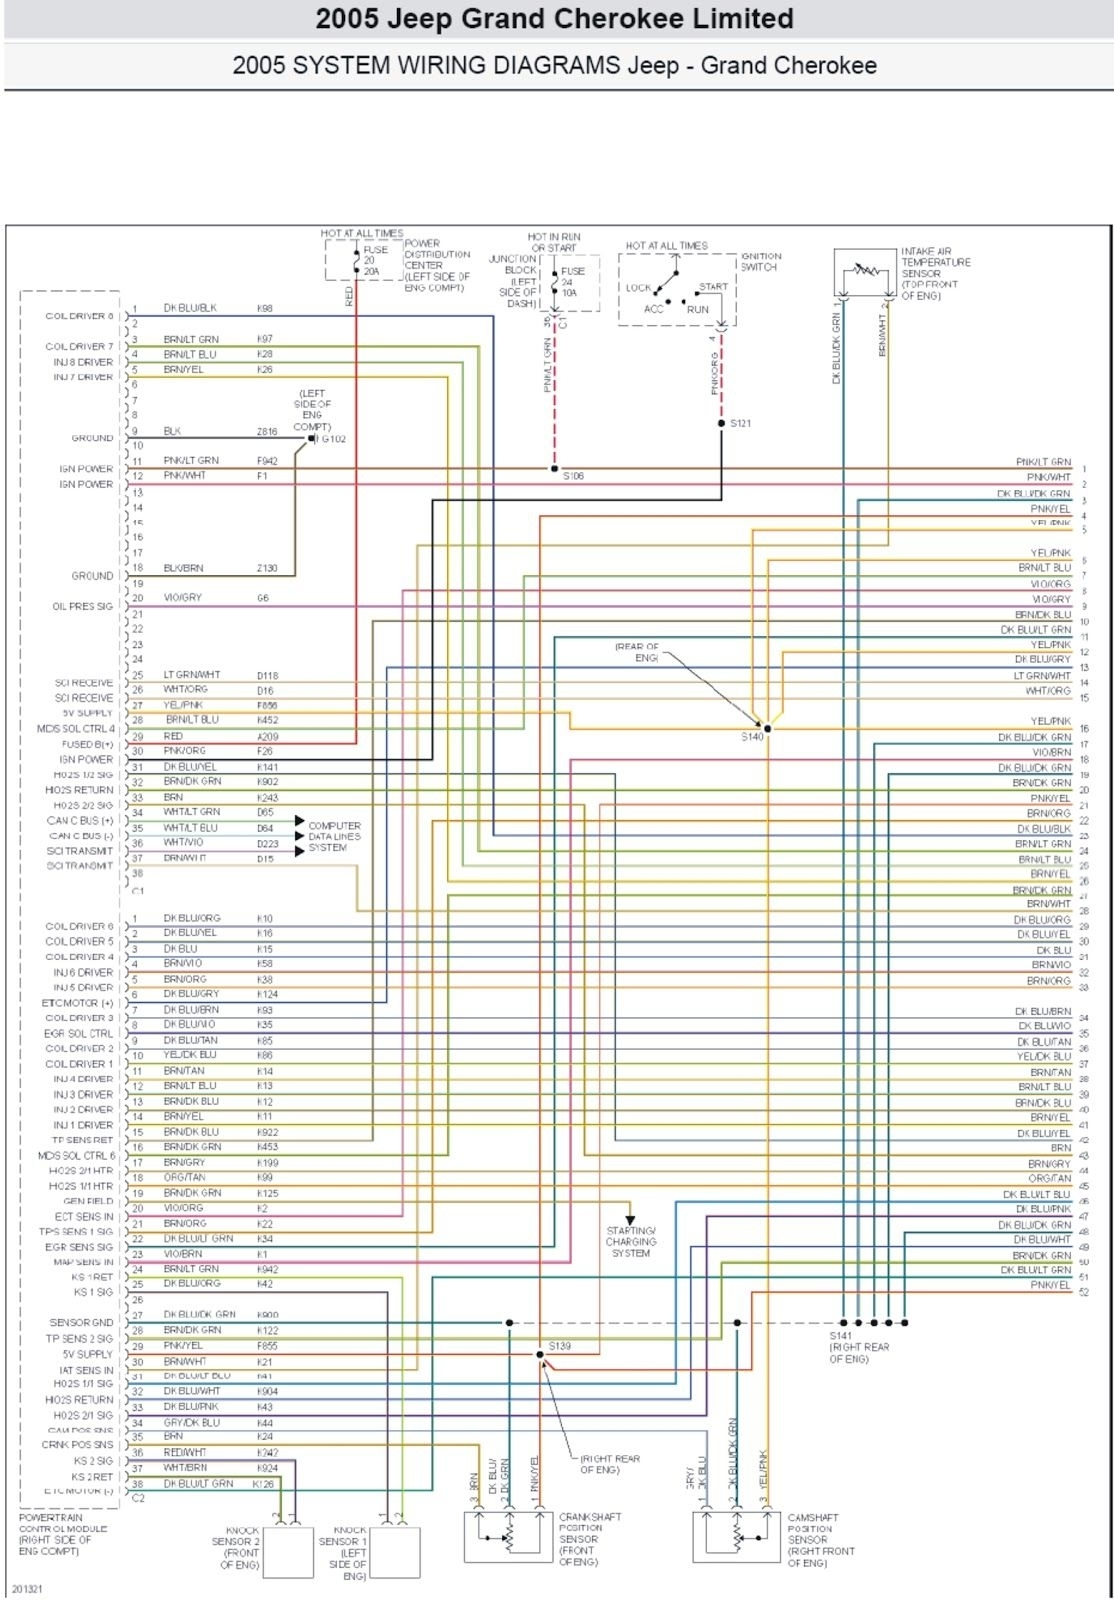 jeep grand cherokee wj stereo system wiring diagrams within 2005 jeep grand cherokee parts diagram wiring diagram for jeep grand cherokee wiring diagram simonand 2015 jeep grand cherokee wiring diagram at reclaimingppi.co